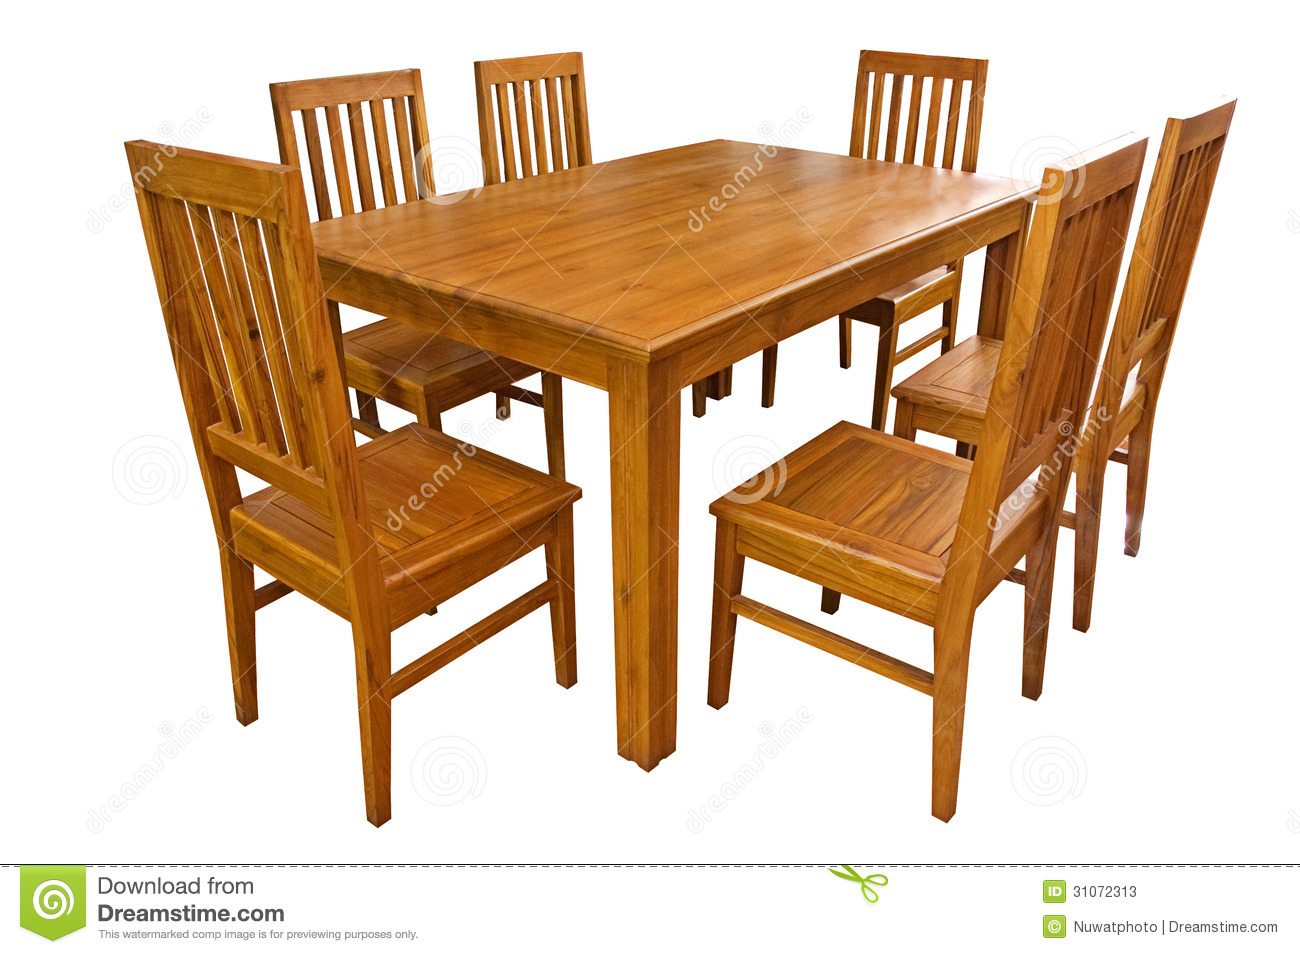 Dining Table And Chairs Isolated Stock Photos - Image: 31072313